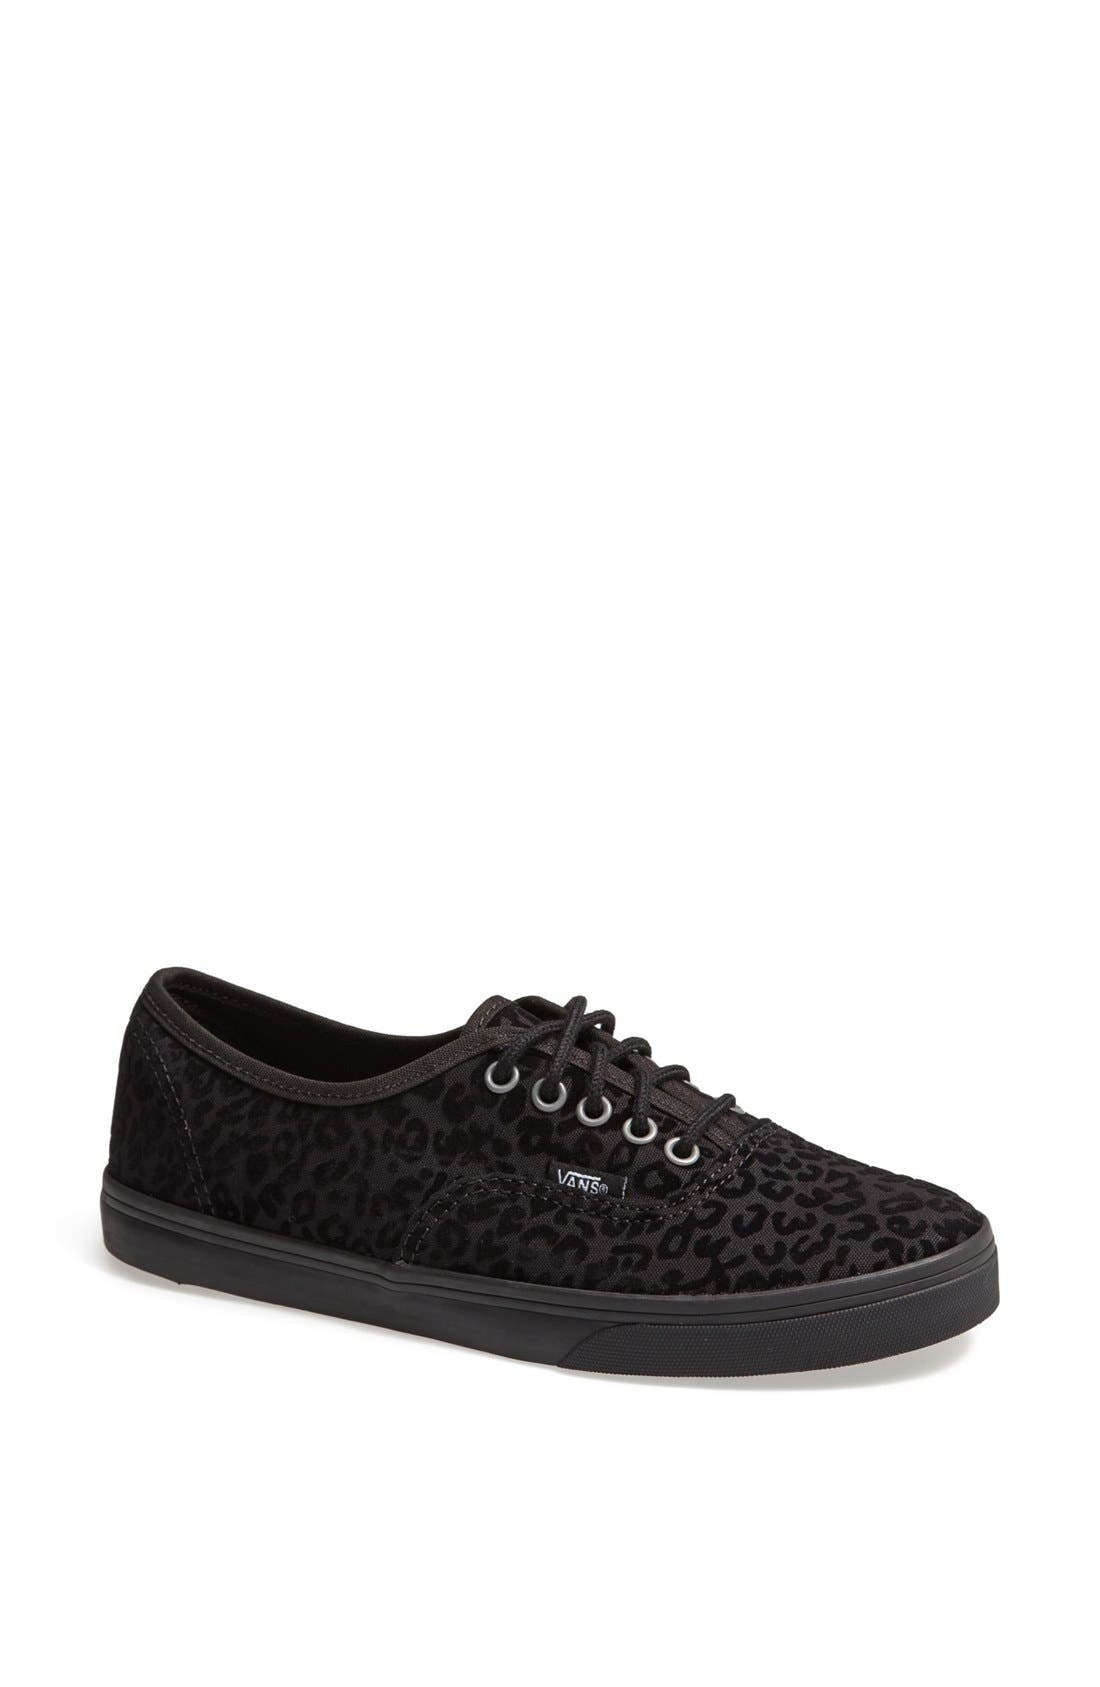 Alternate Image 1 Selected - Vans 'Authentic - Lo Pro' Cheetah Spot Sneaker